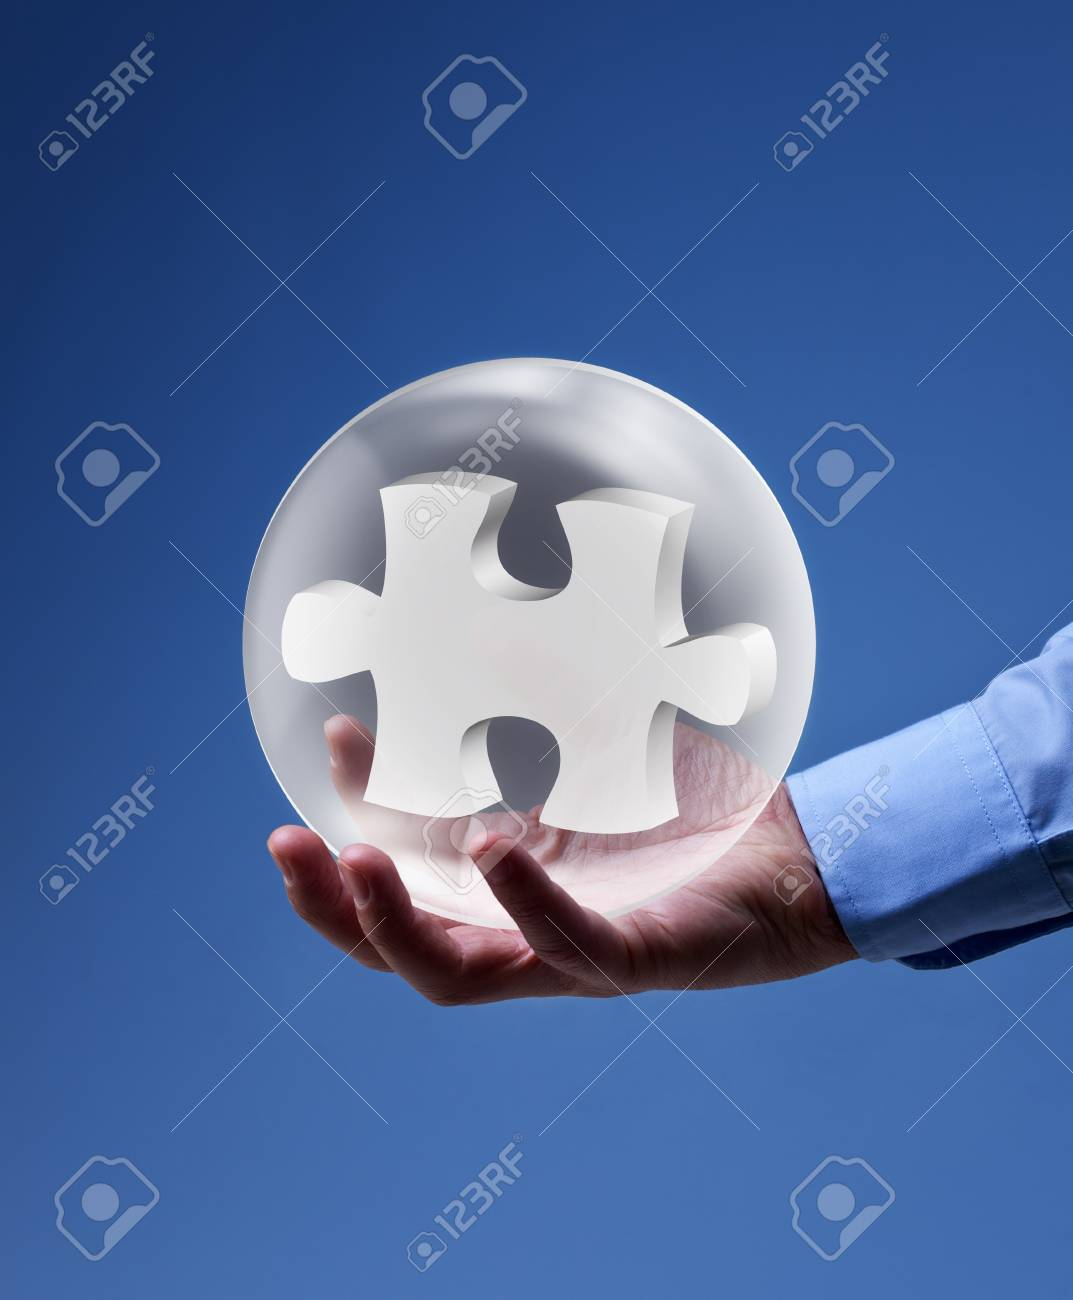 The key piece of a solution concept - puzzle pieces in glass bubbles Stock Photo - 18013894